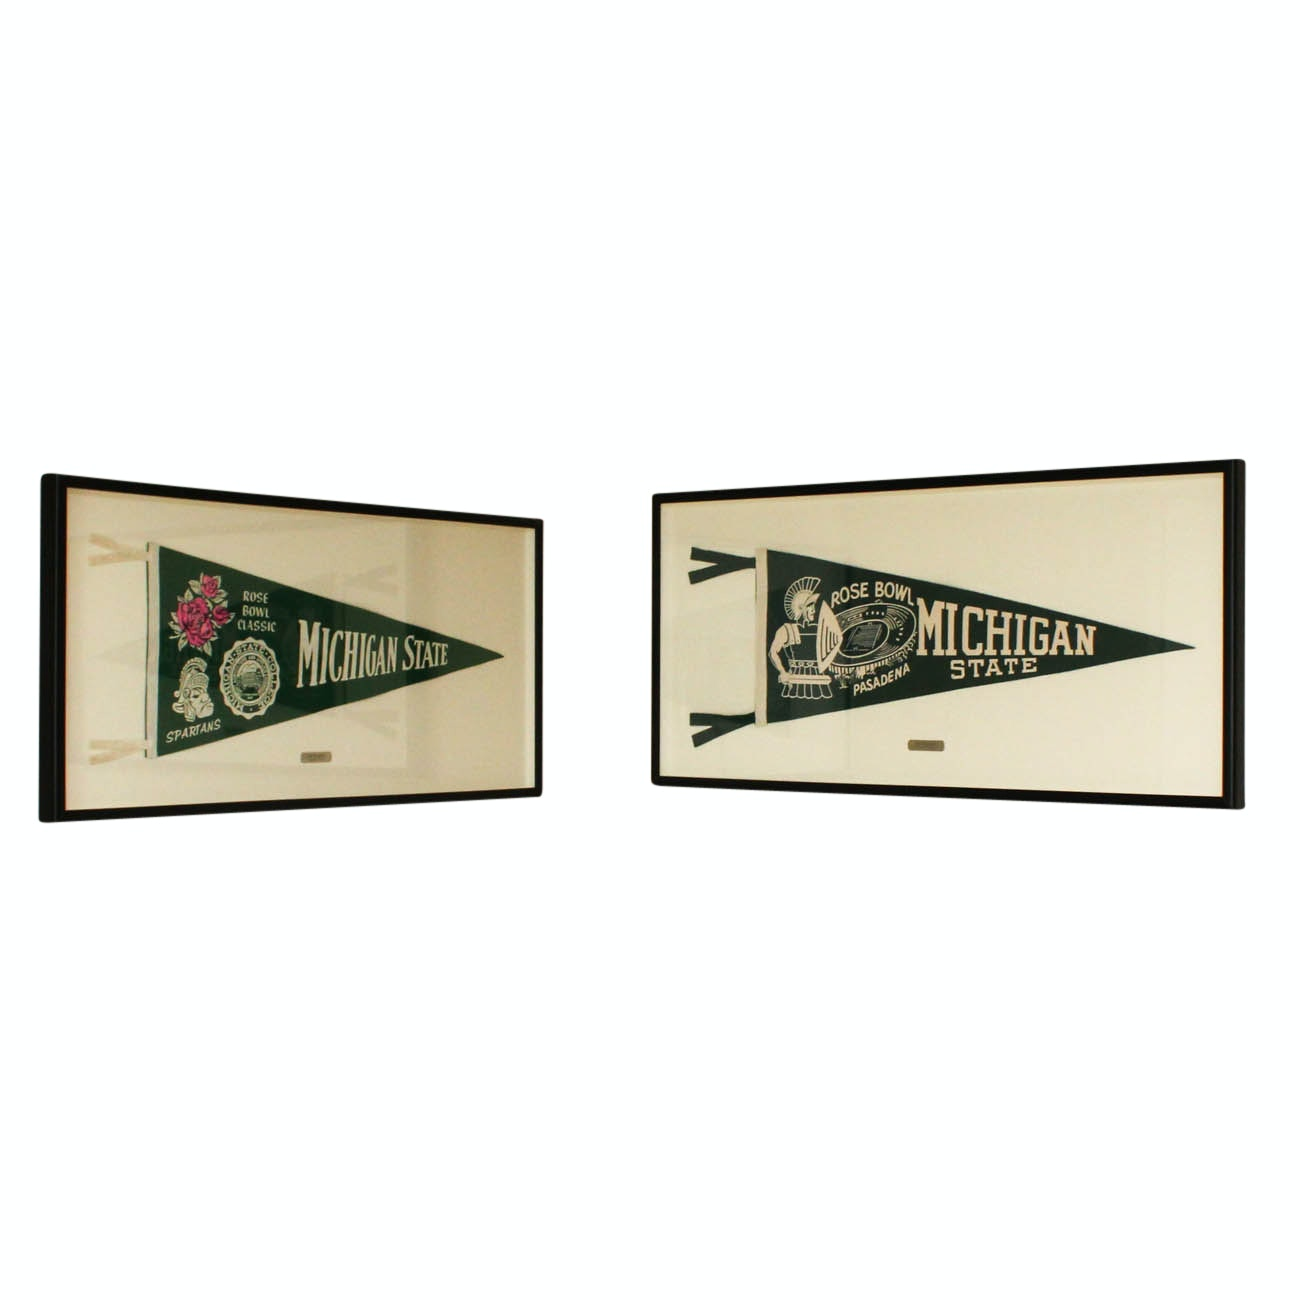 Vintage Framed Michigan State Pennant Flags Including the 1956 Rose Bowl